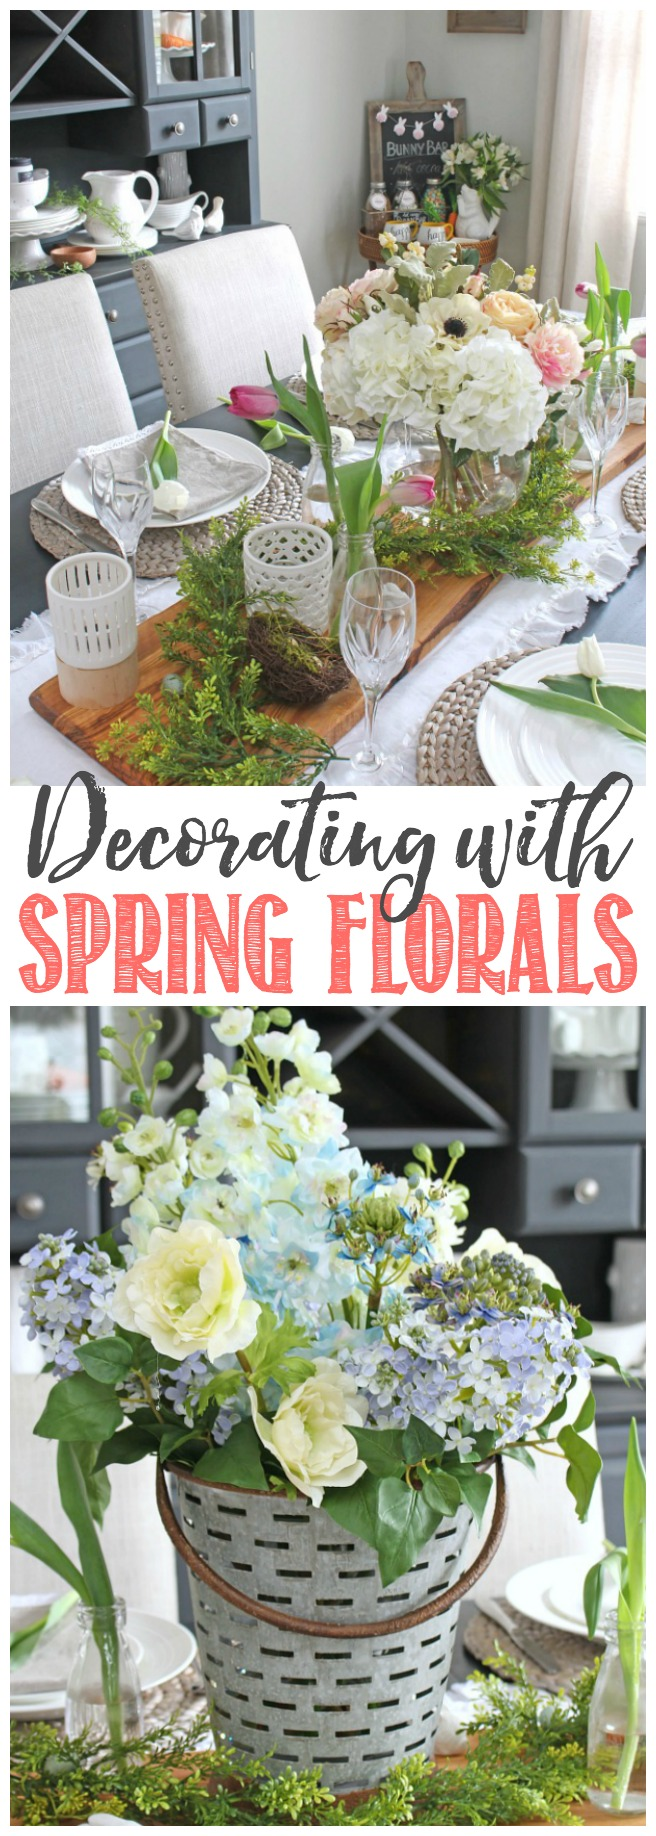 Beautiful spring decorating ideas using flowers.  Fresh, faux, and fabulous!